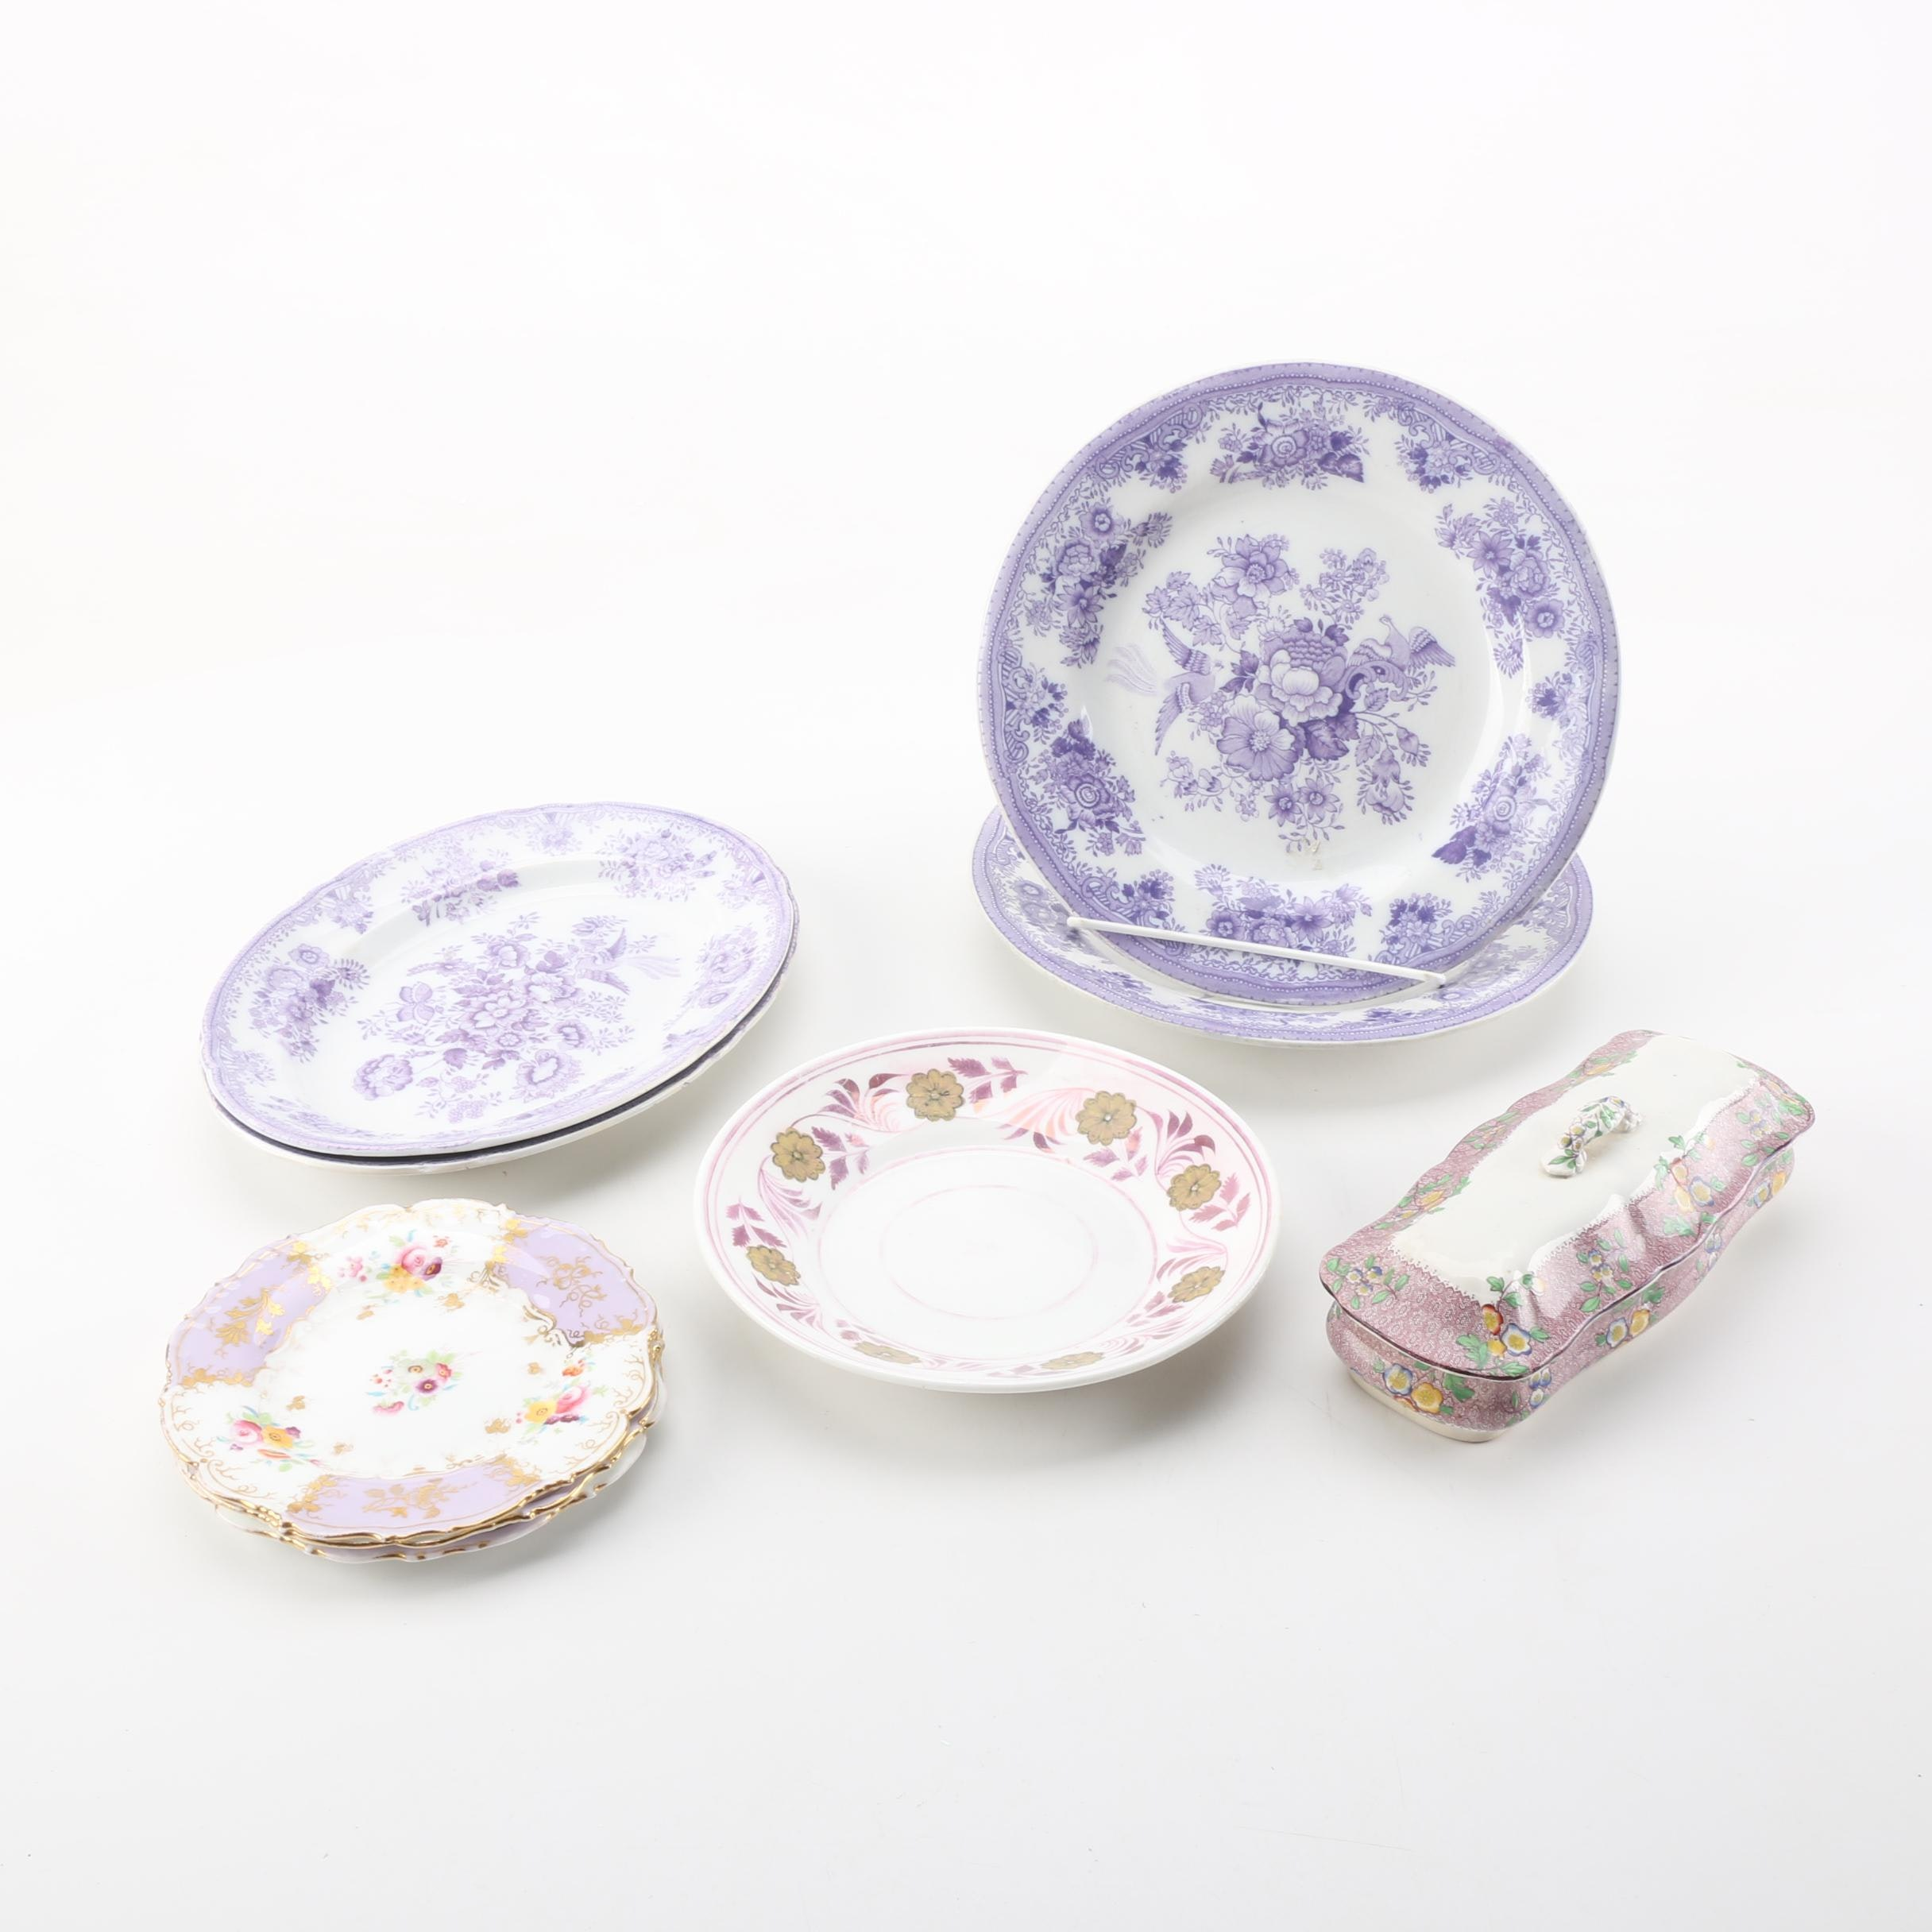 Selection of Porcelain and China Tableware